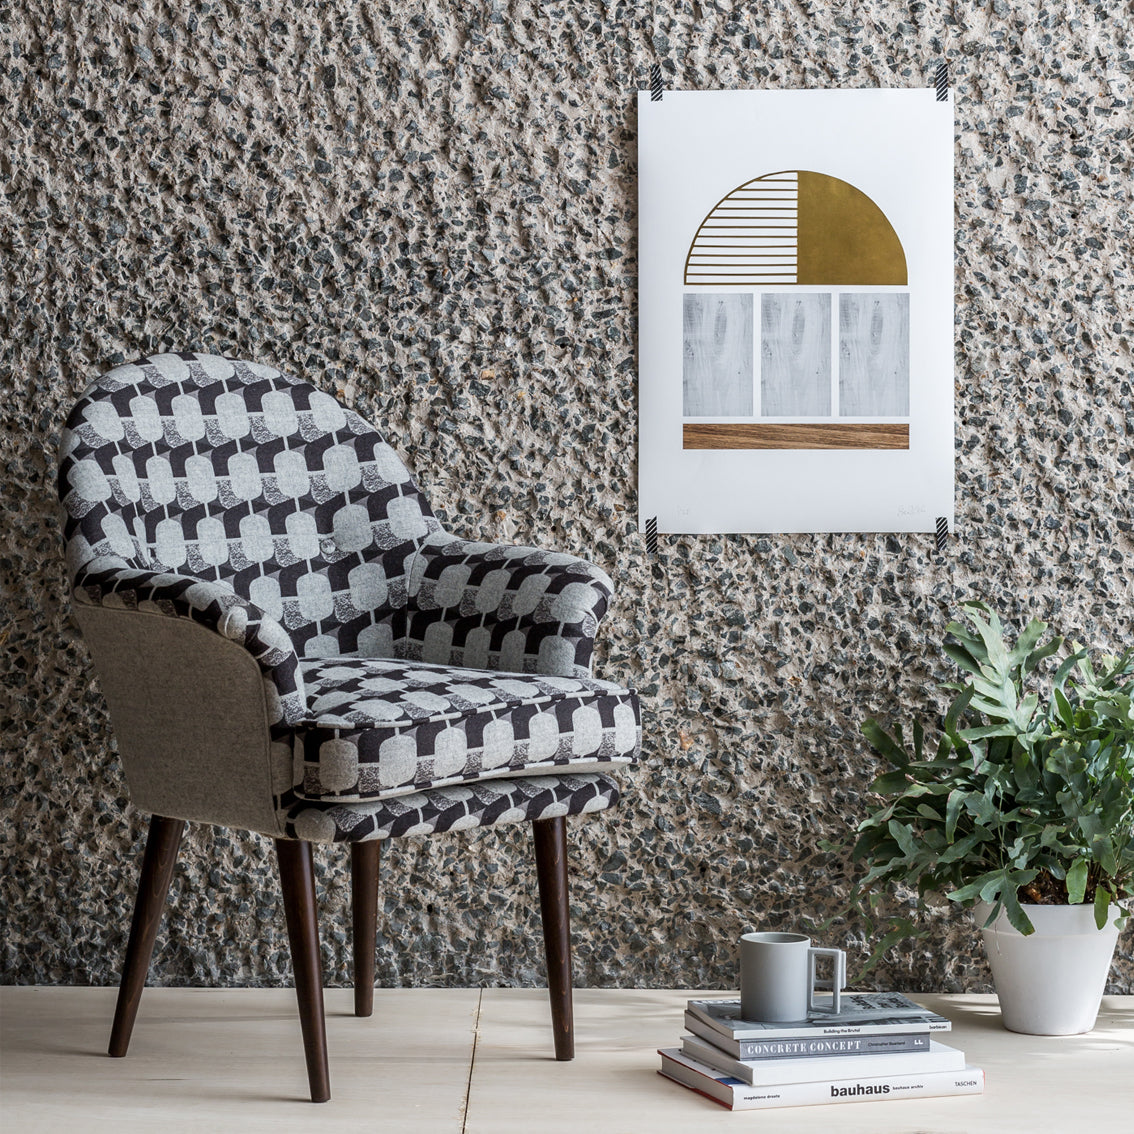 Limited Edition Lauderdale Chairs At The Barbican Galapagos Ecodesigns